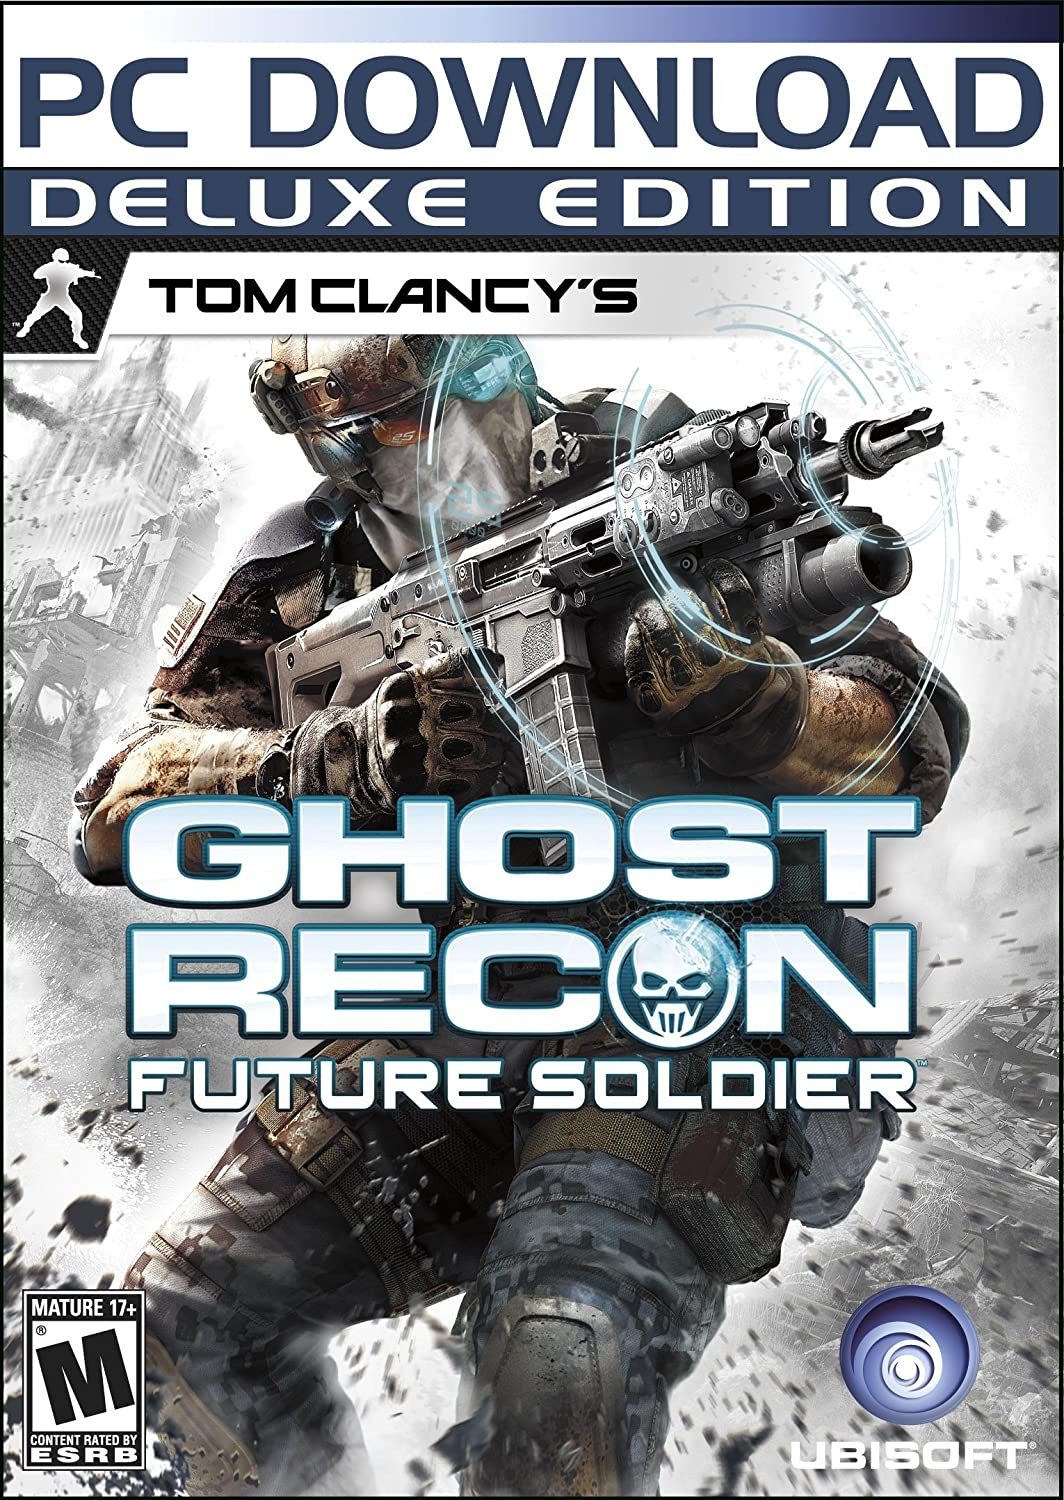 Tom Clancys Ghost Recon Future Soldier Xbox 360 Kaset Bd Game Ps4 For Honor Deluxe Edition  Only Reg 3 Ubisoft Video Games